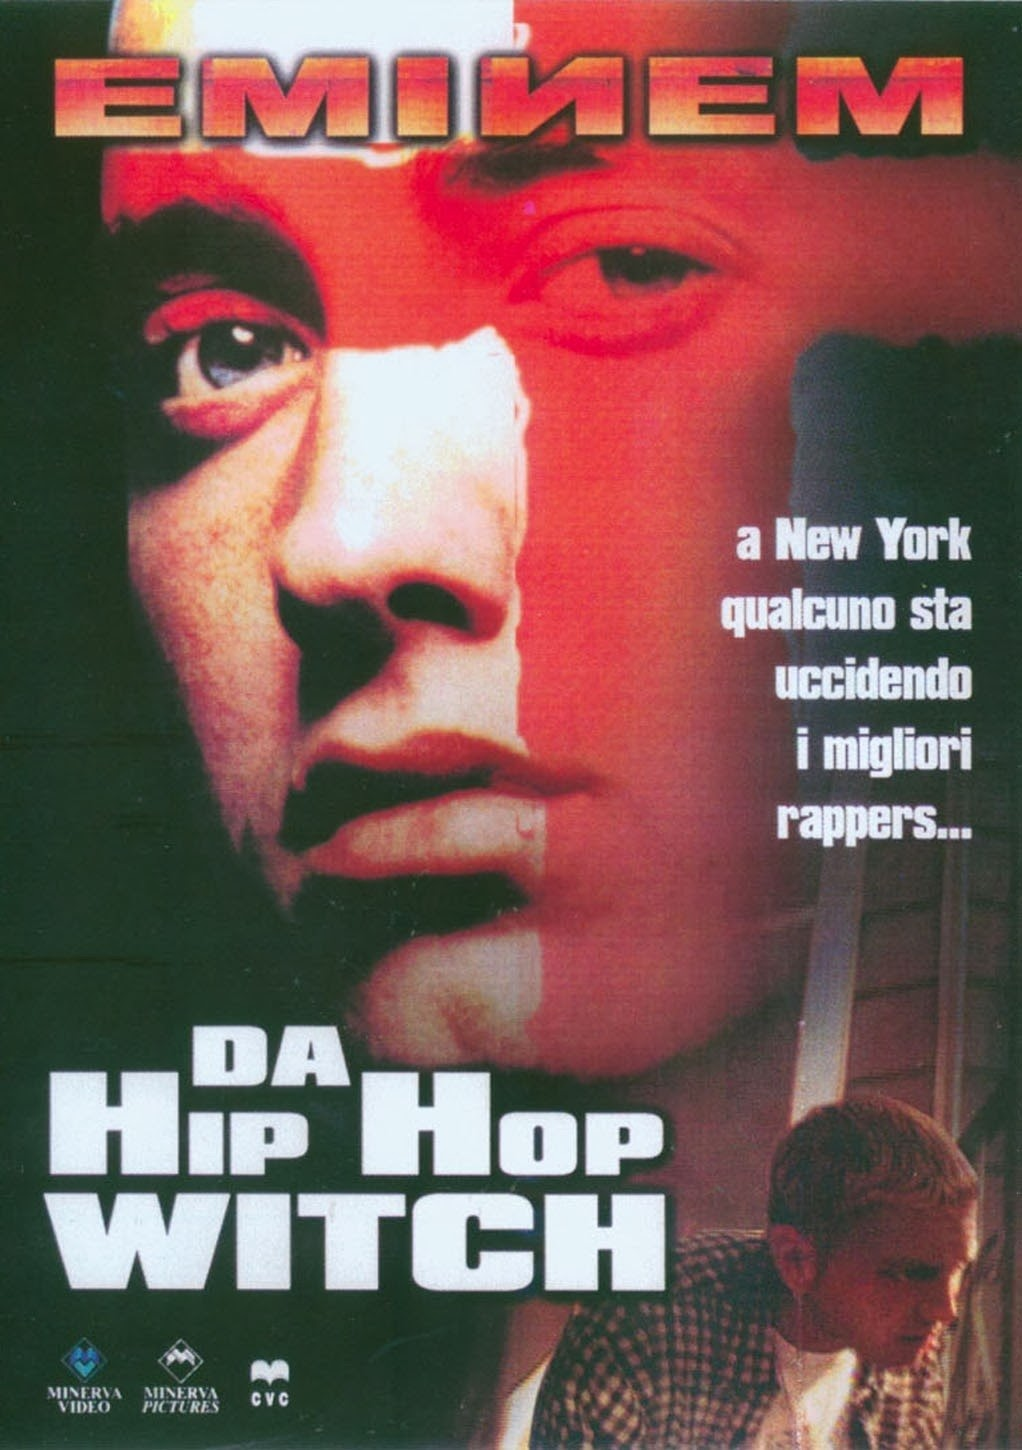 The hip hop project the movie